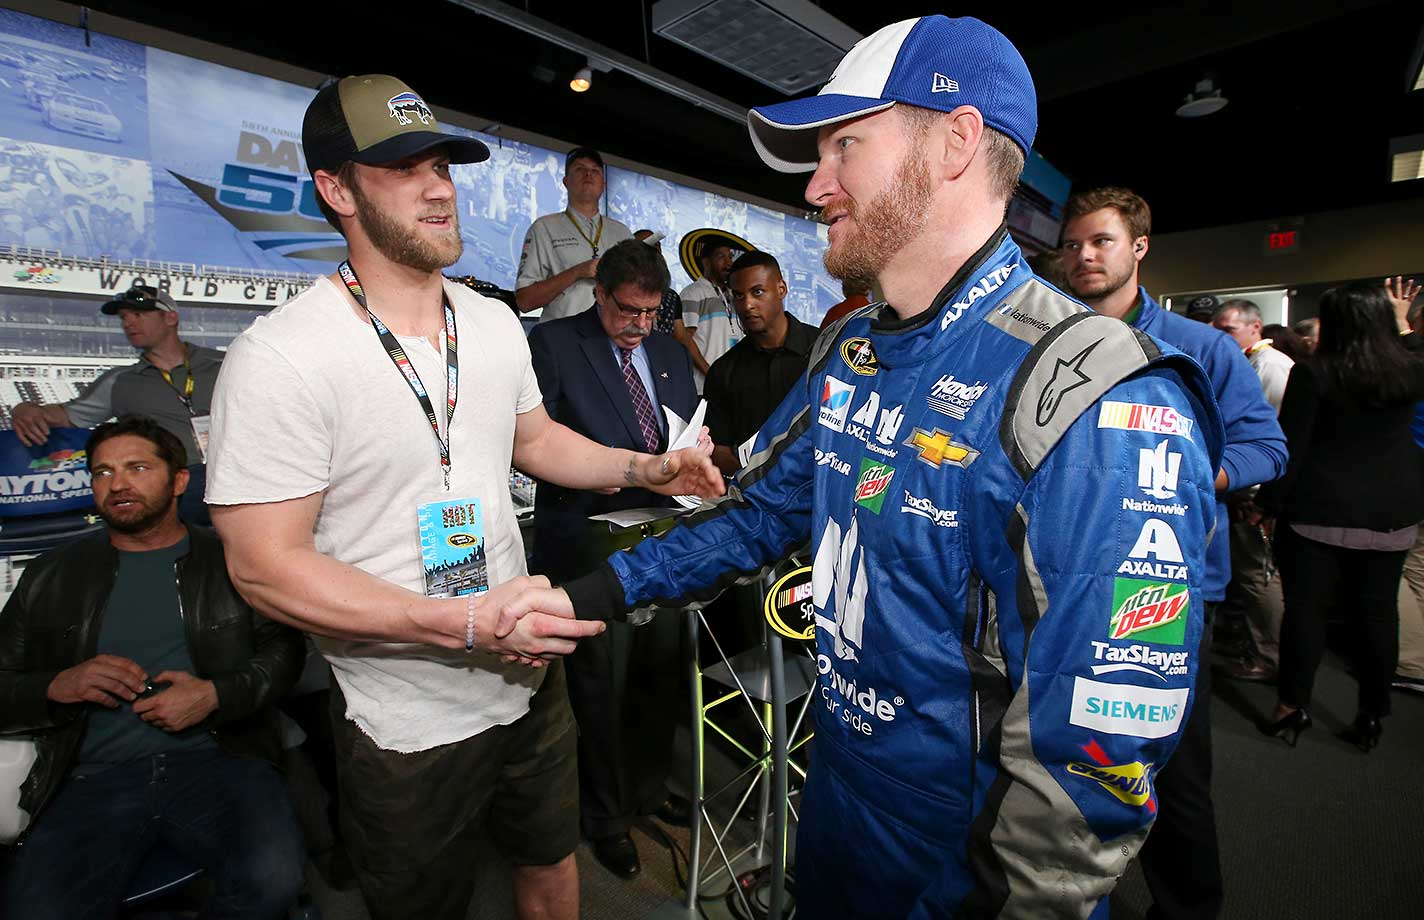 Bryce Harper talks to Dale Earnhardt Jr. at the drivers's meeting.